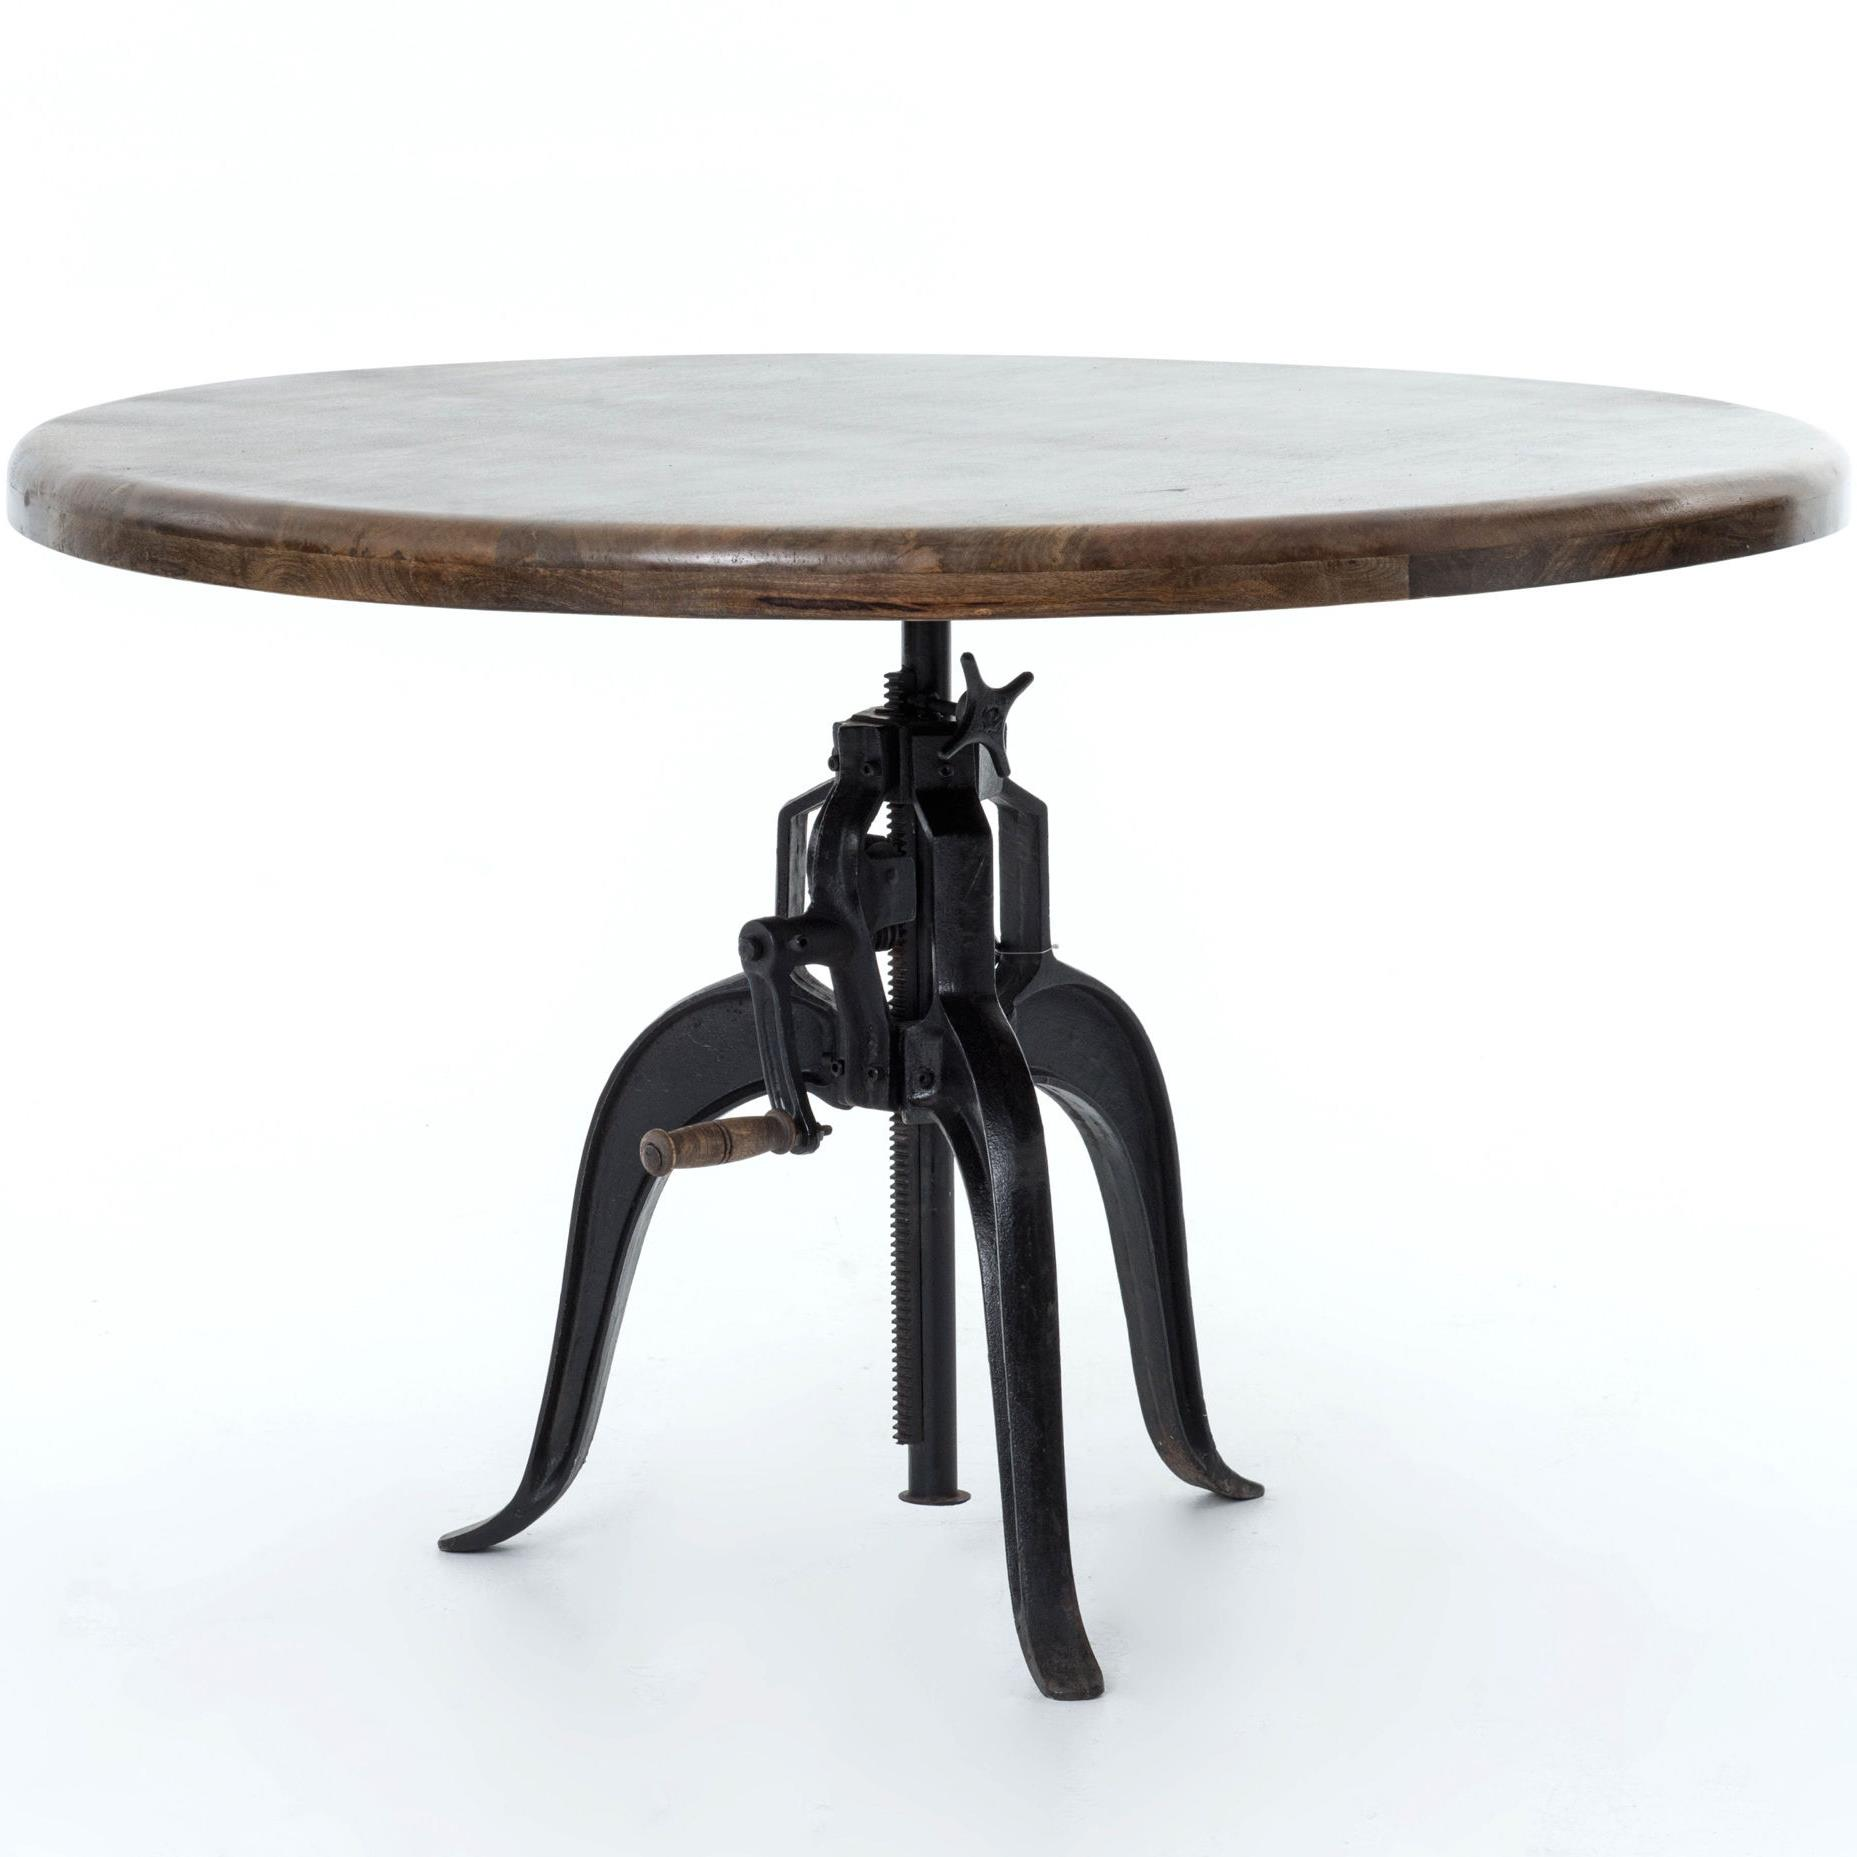 Interior Style Rockwell Adjustable Round Dining Table With Cast Iron Base Sprintz Furniture Kitchen Tables